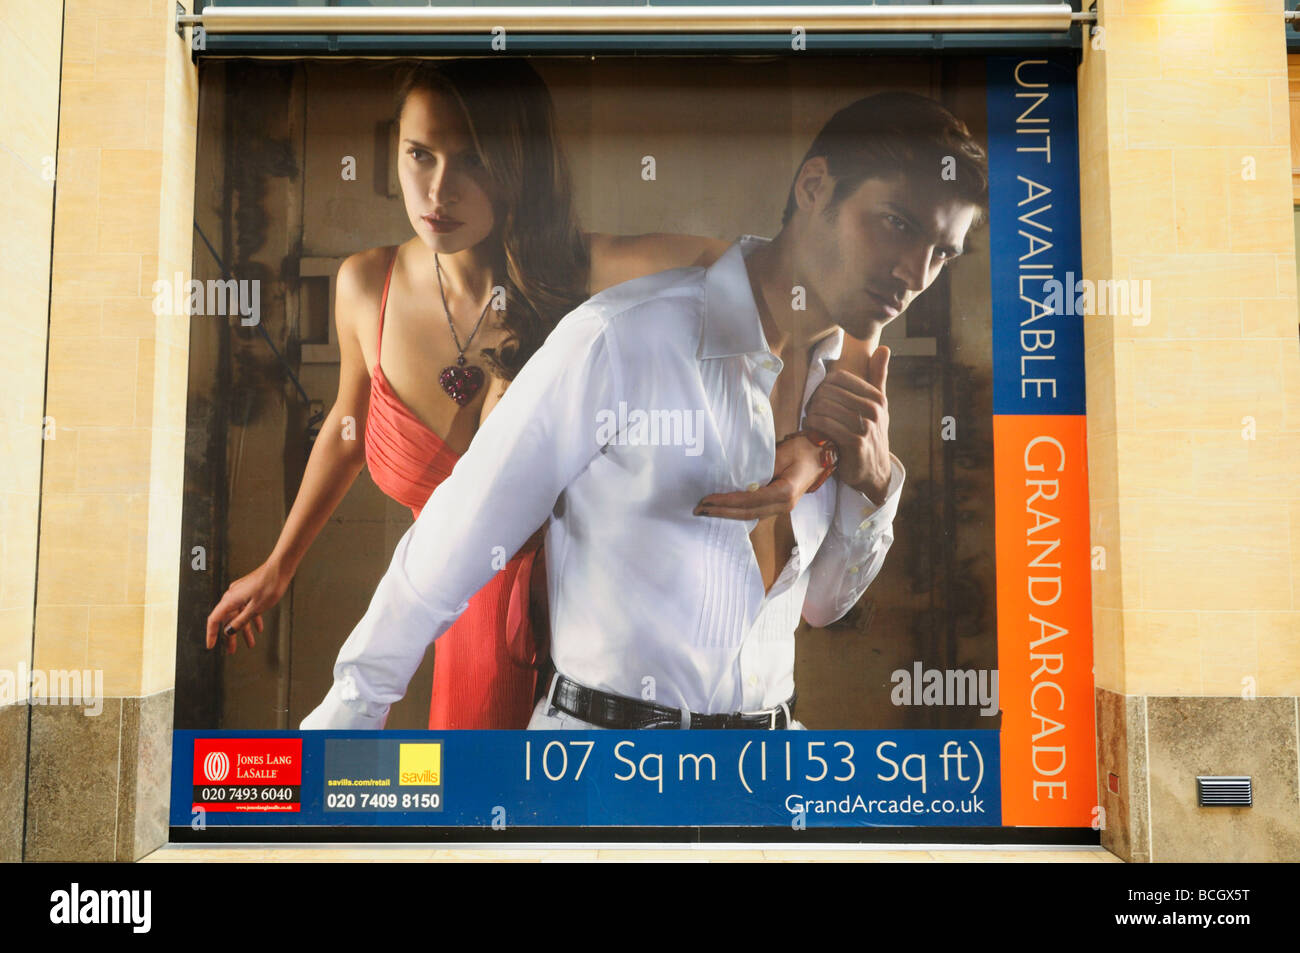 Poster advertising Shop unit available in the Grand Arcade Shopping centre Cambridge England UK - Stock Image